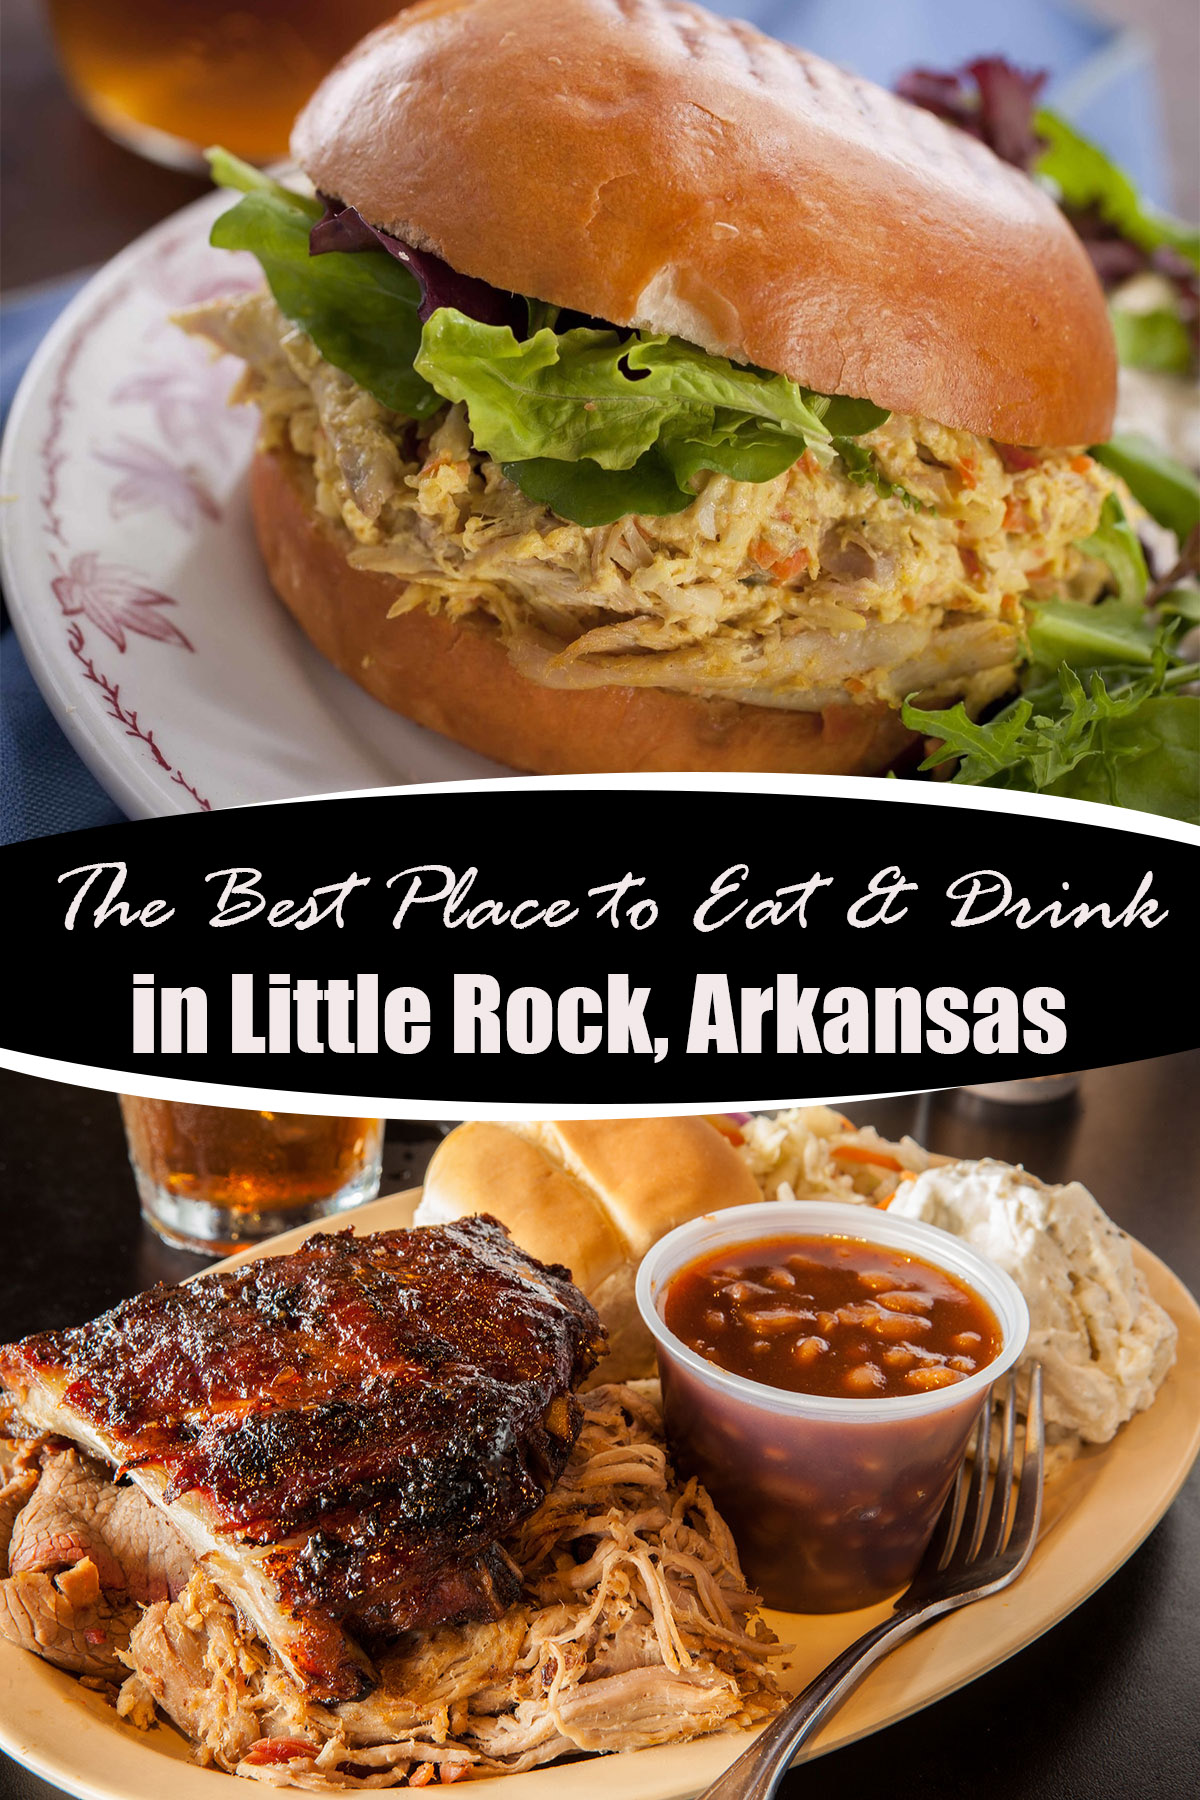 The Best Places to Eat Drink in Little Rock Arkansas